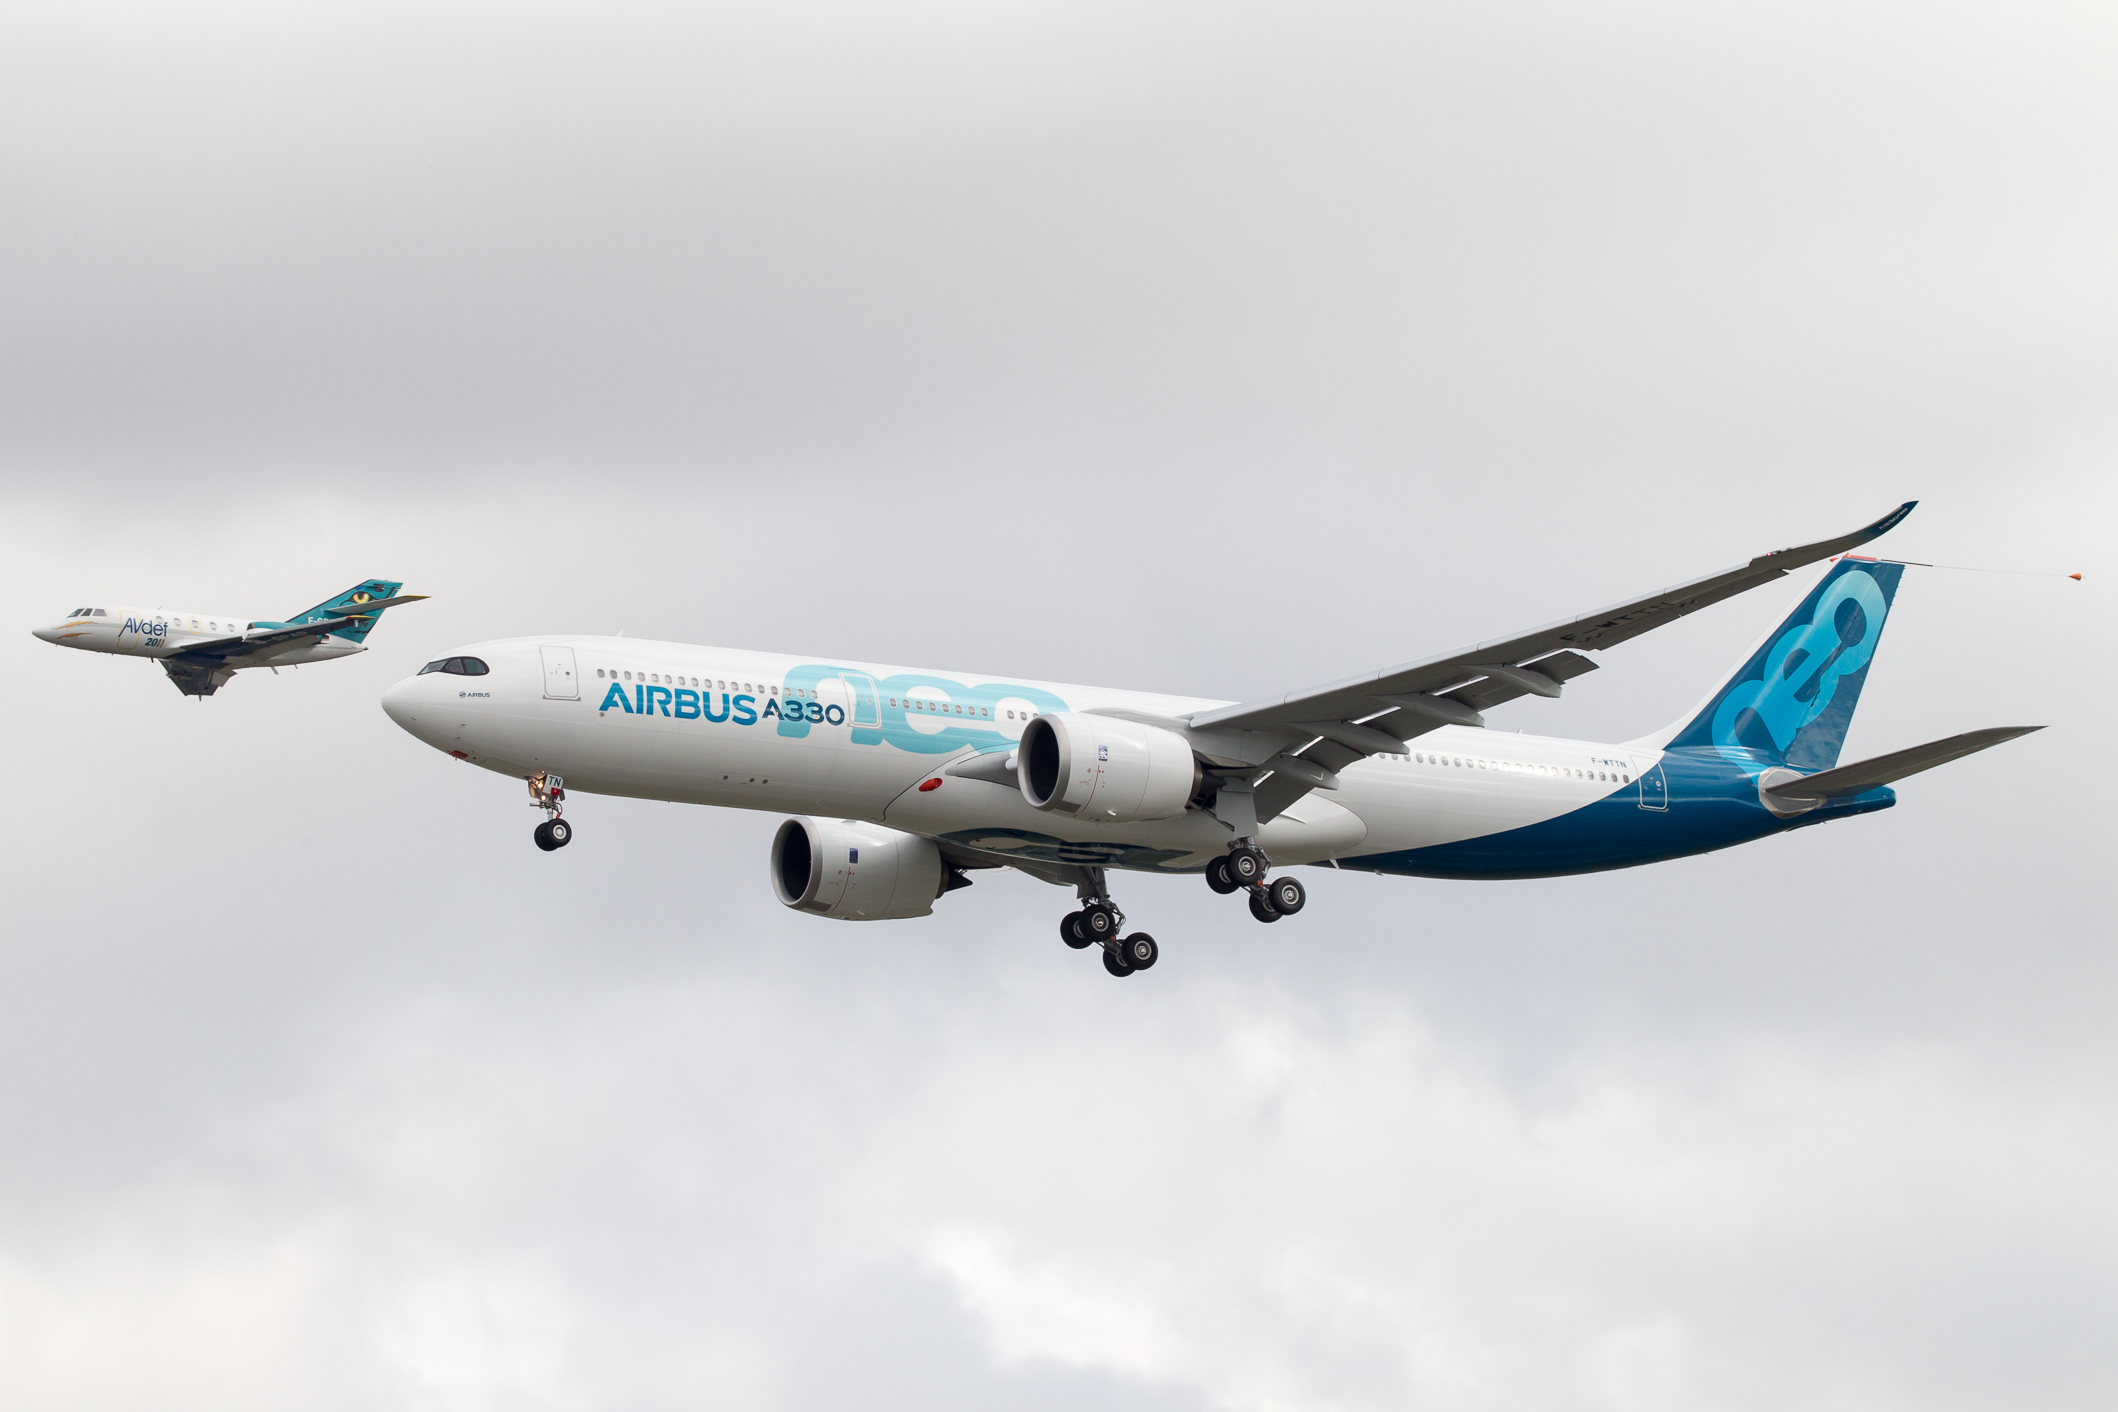 A330neo first flight